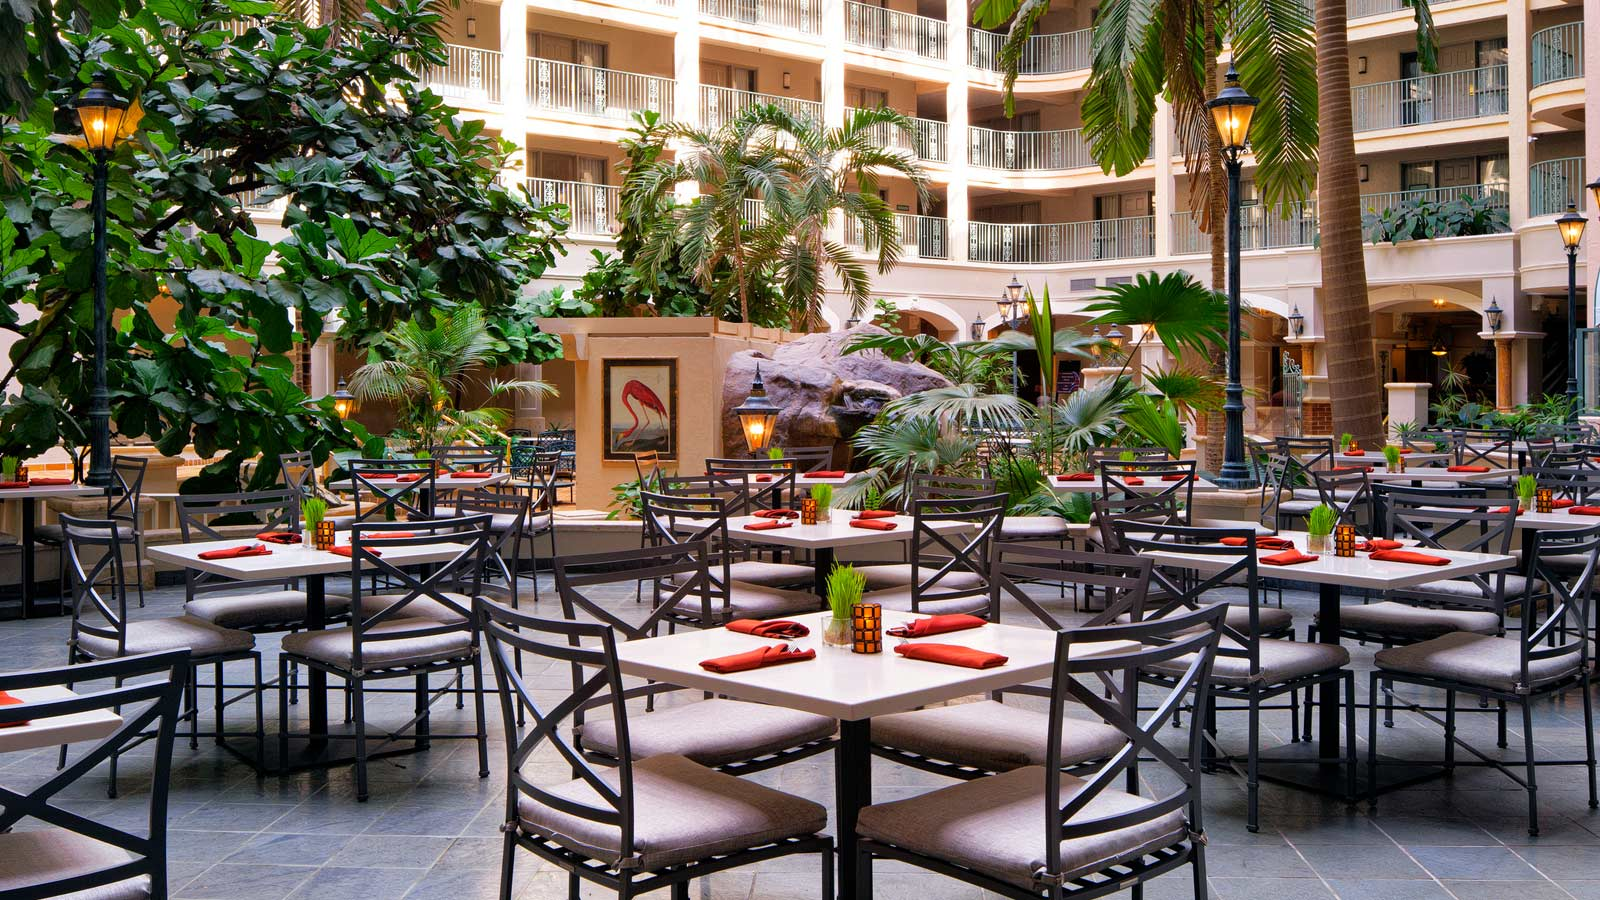 Terrace 555 Restaurant & Bar at Sheraton Suites Fort Lauderdale at Cypress Creek